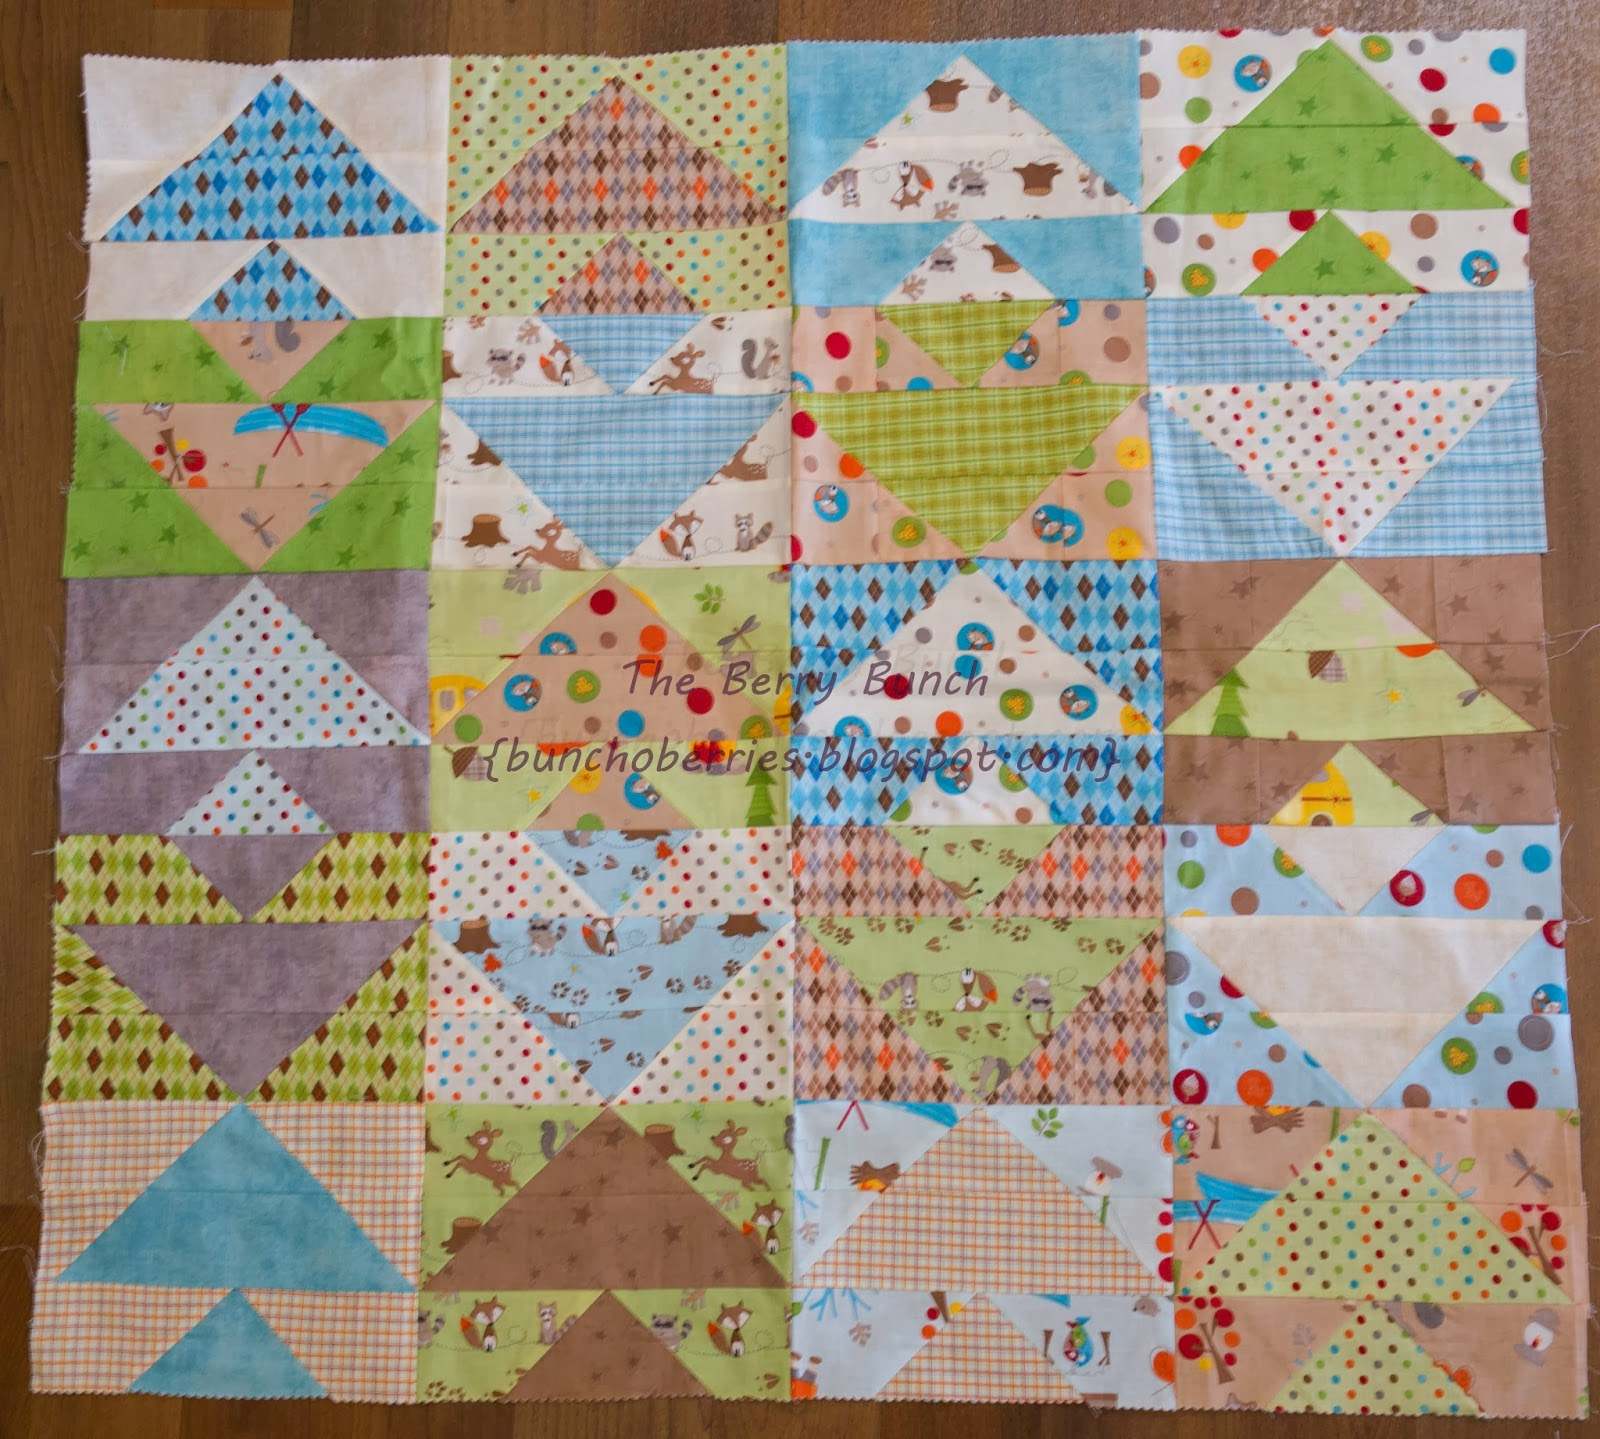 The Berry Bunch: 2014 Finish-A-Long: Jelly Roll Quilt